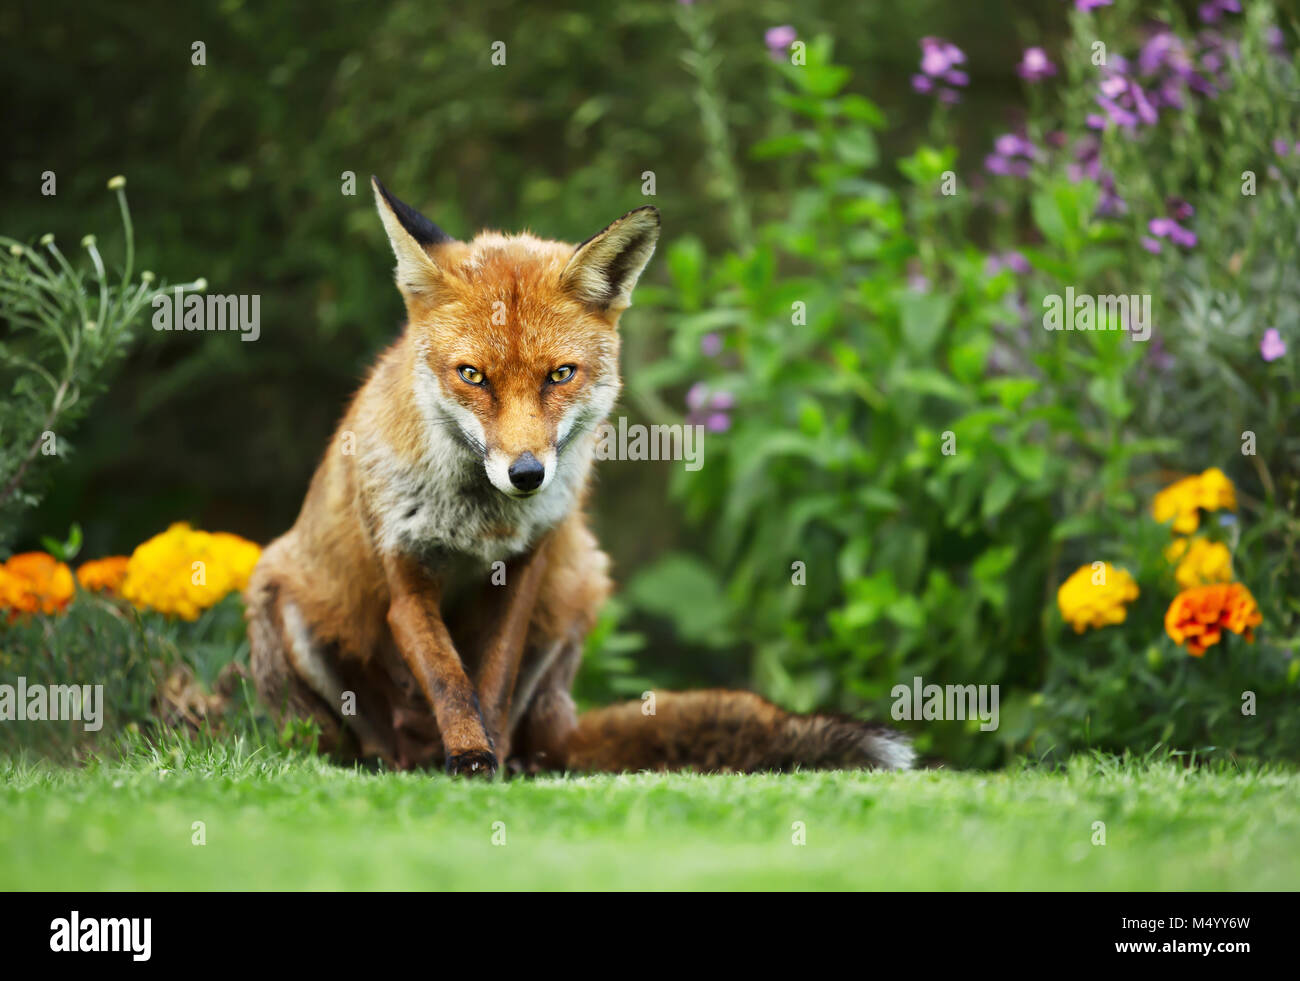 Close-up of a Red fox standing in the garden with flowers, summer in UK. - Stock Image